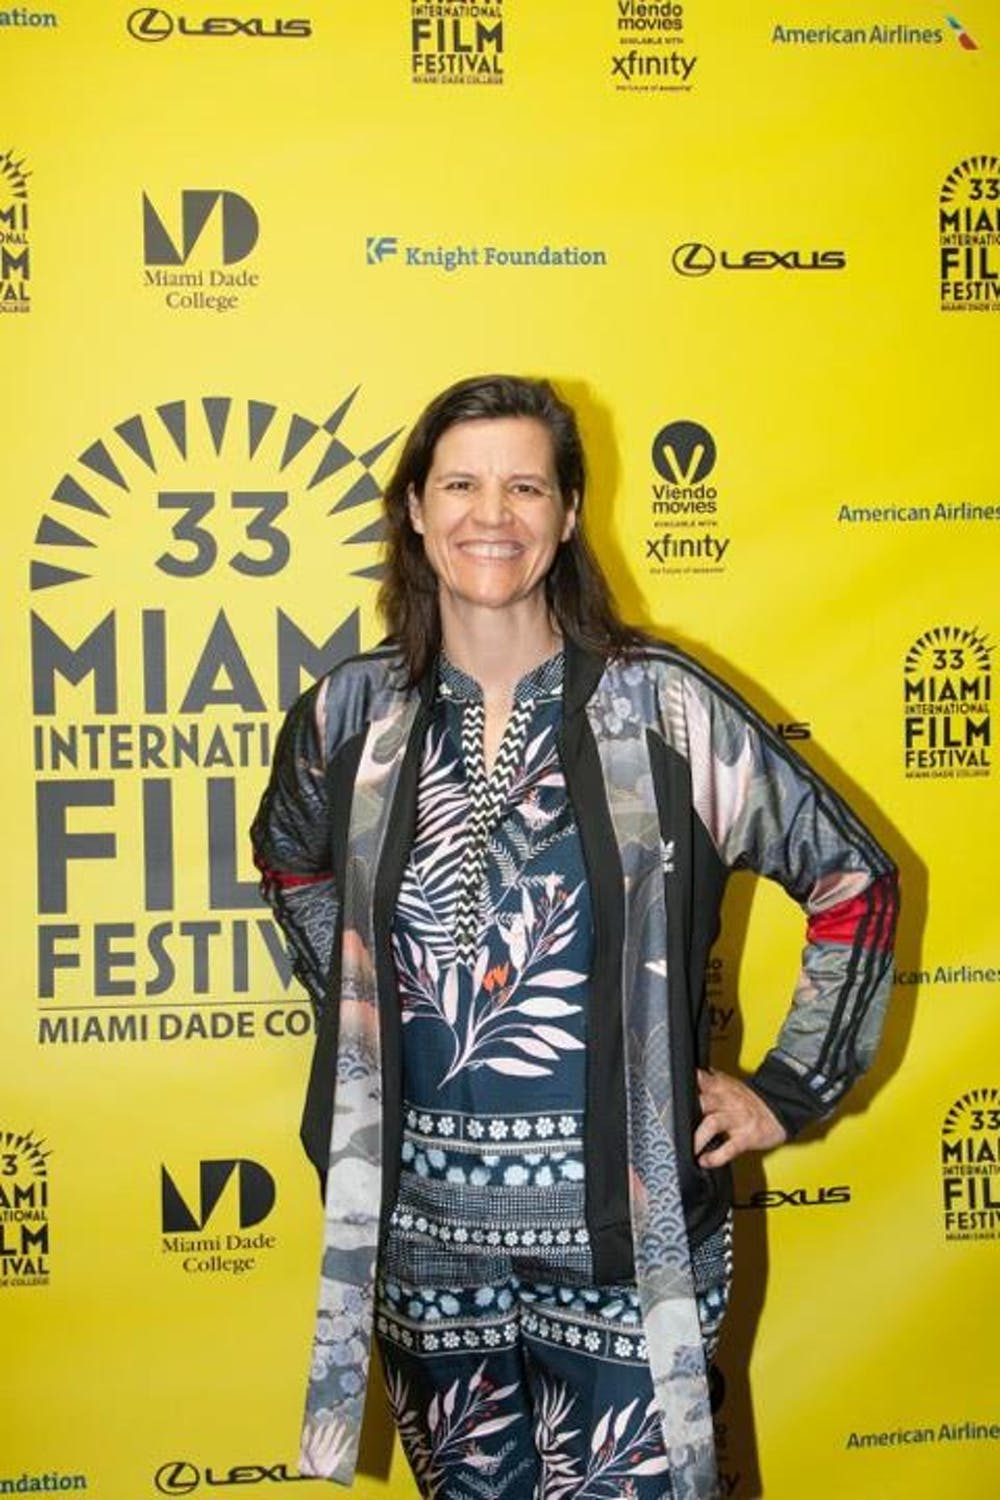 <p>Documentary filmmaker Kirsten Johnson's most recent project is an intimate look into her relationship with her father.&nbsp;</p>